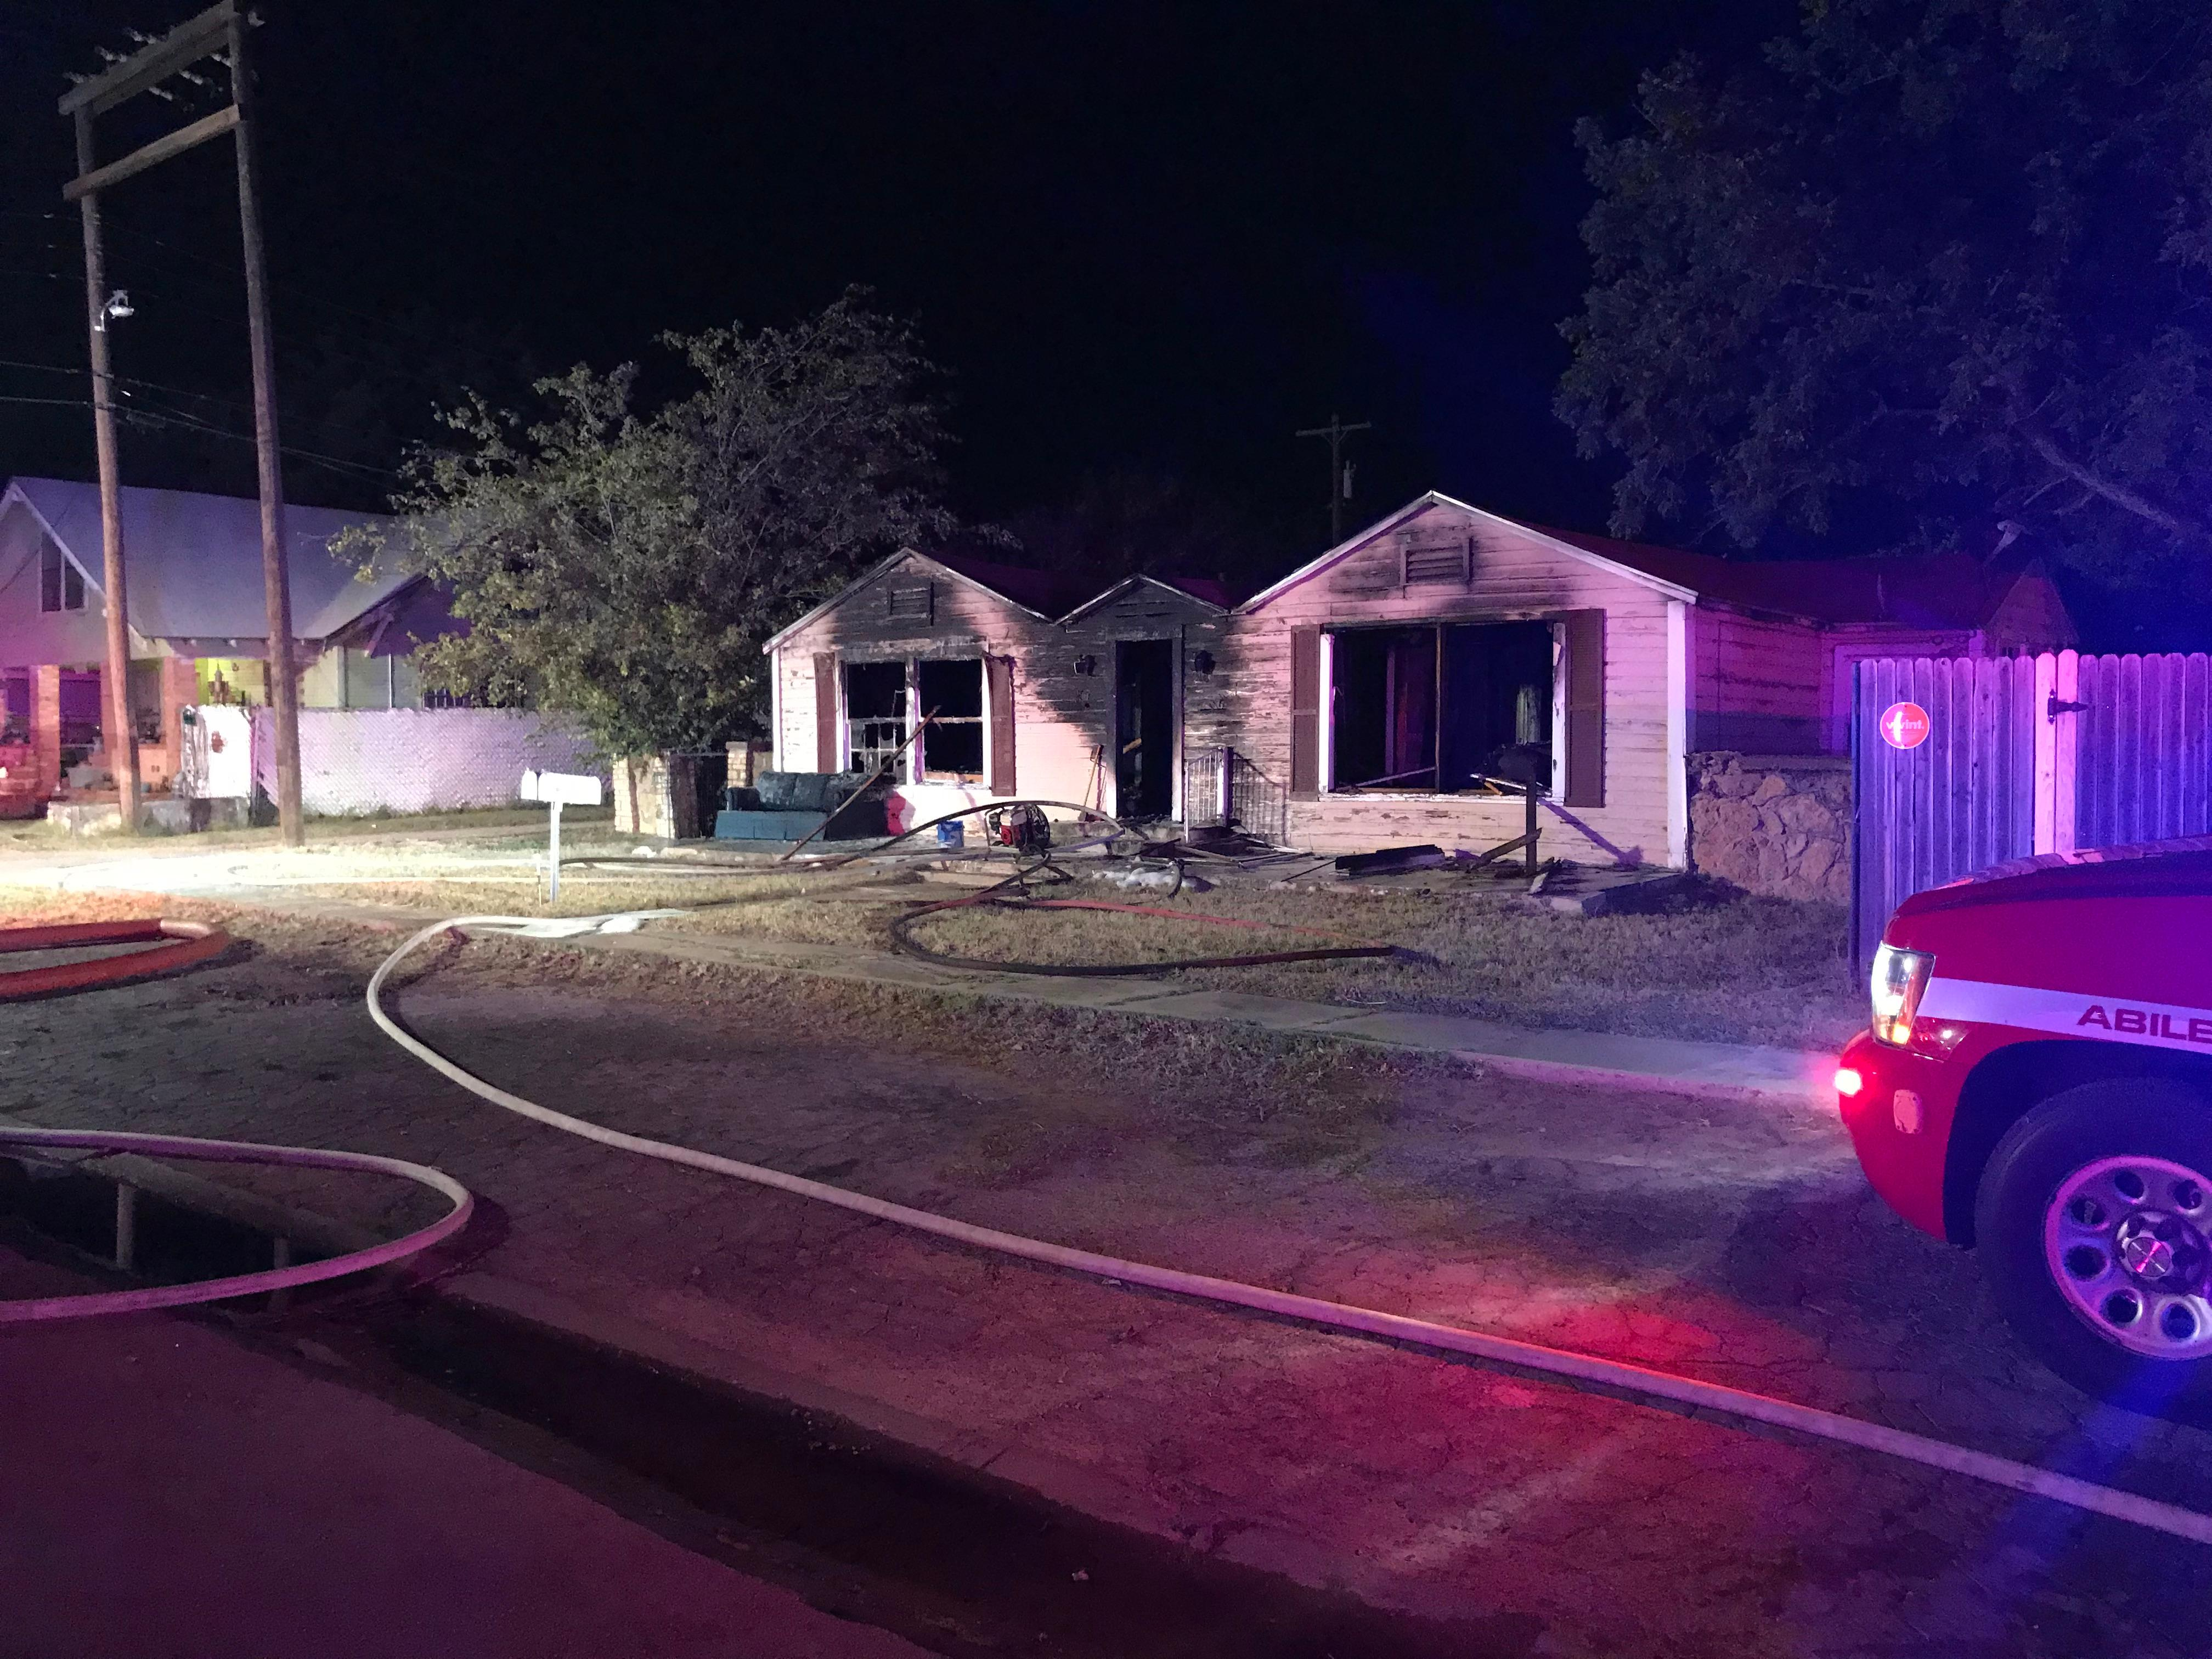 Fire damaged a home Tuesday, Sept. 19 in the 1400 block of North 6th Street in Abilene.